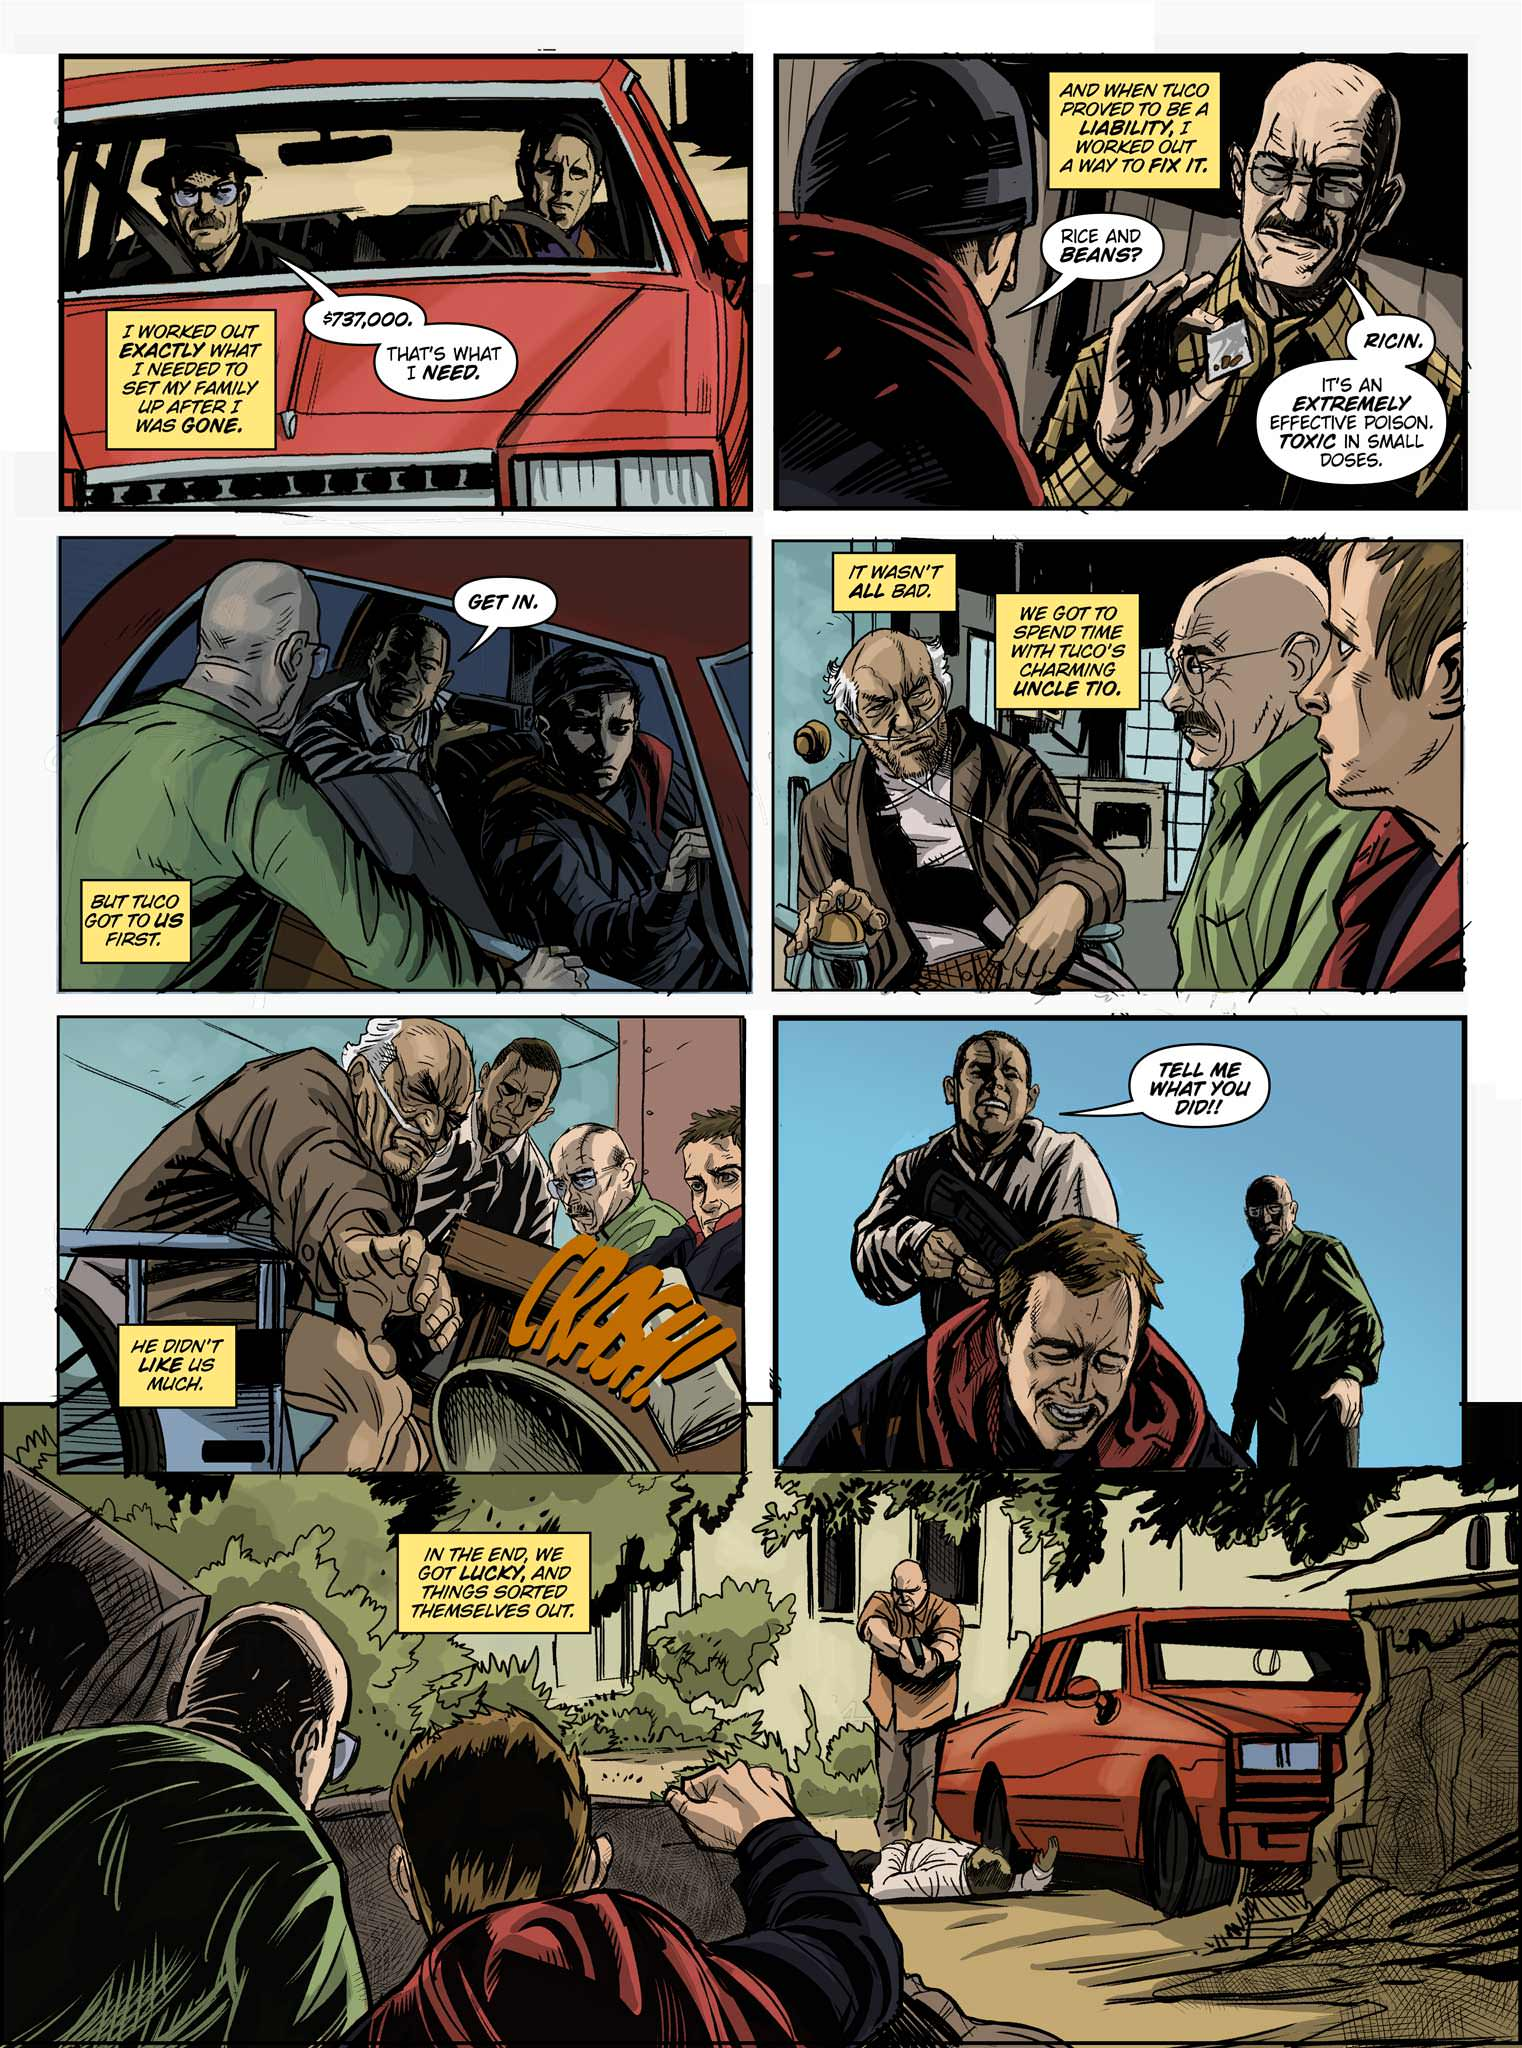 Read online Breaking Bad: All Bad Things comic -  Issue # Full - 6